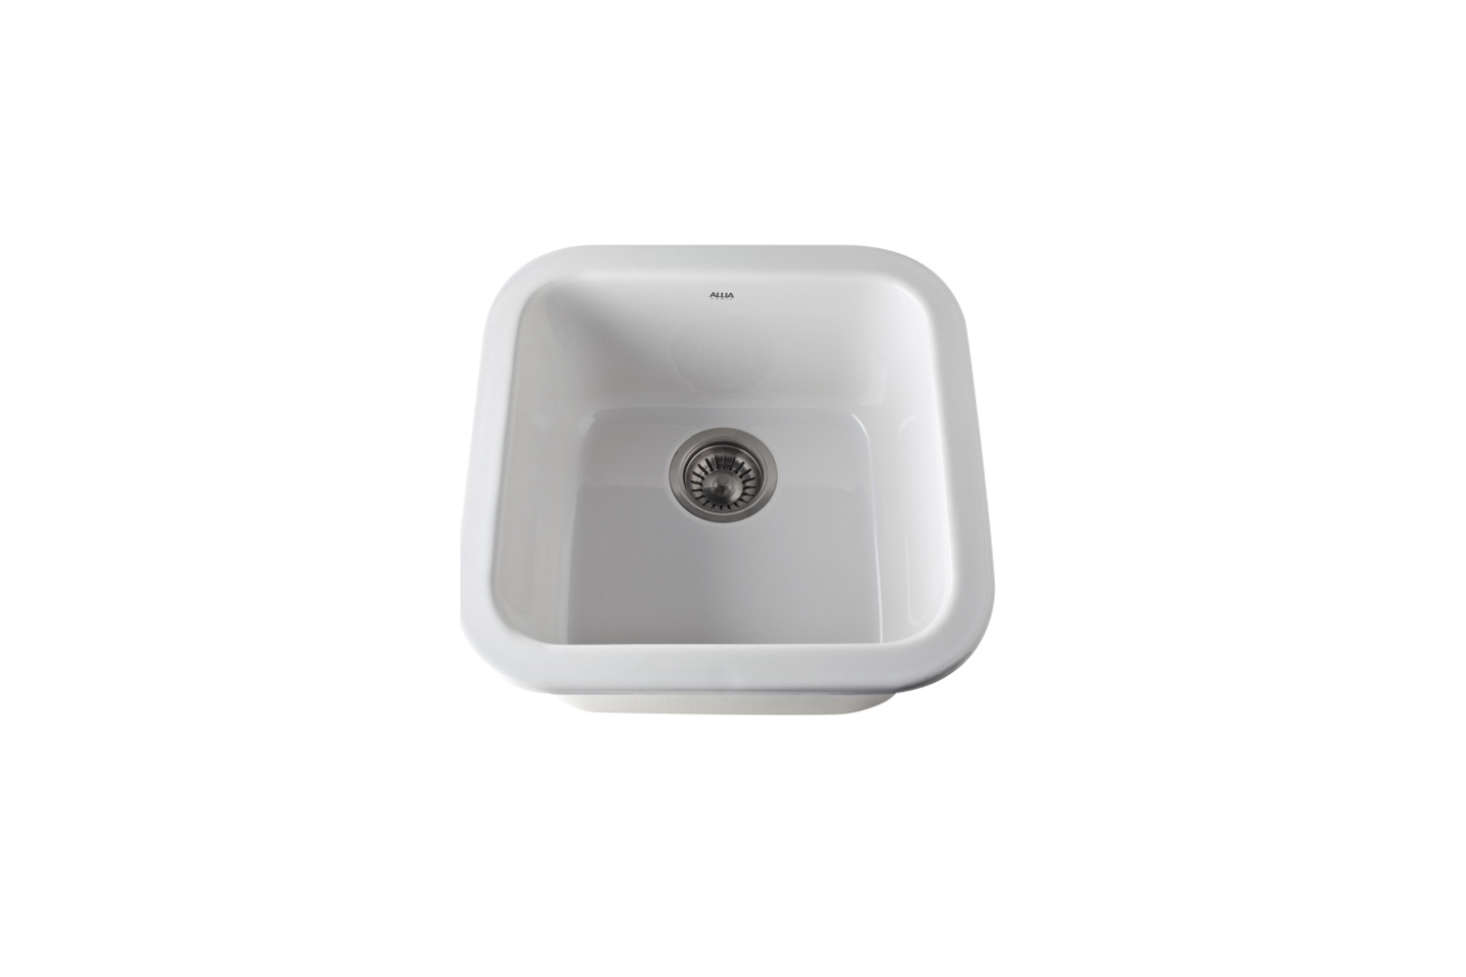 The Rohl Allia Undermount Bar Sink (R5900) in White (shown), Biscuit, and Matte Black from $6. to $860.49 at Ferguson.